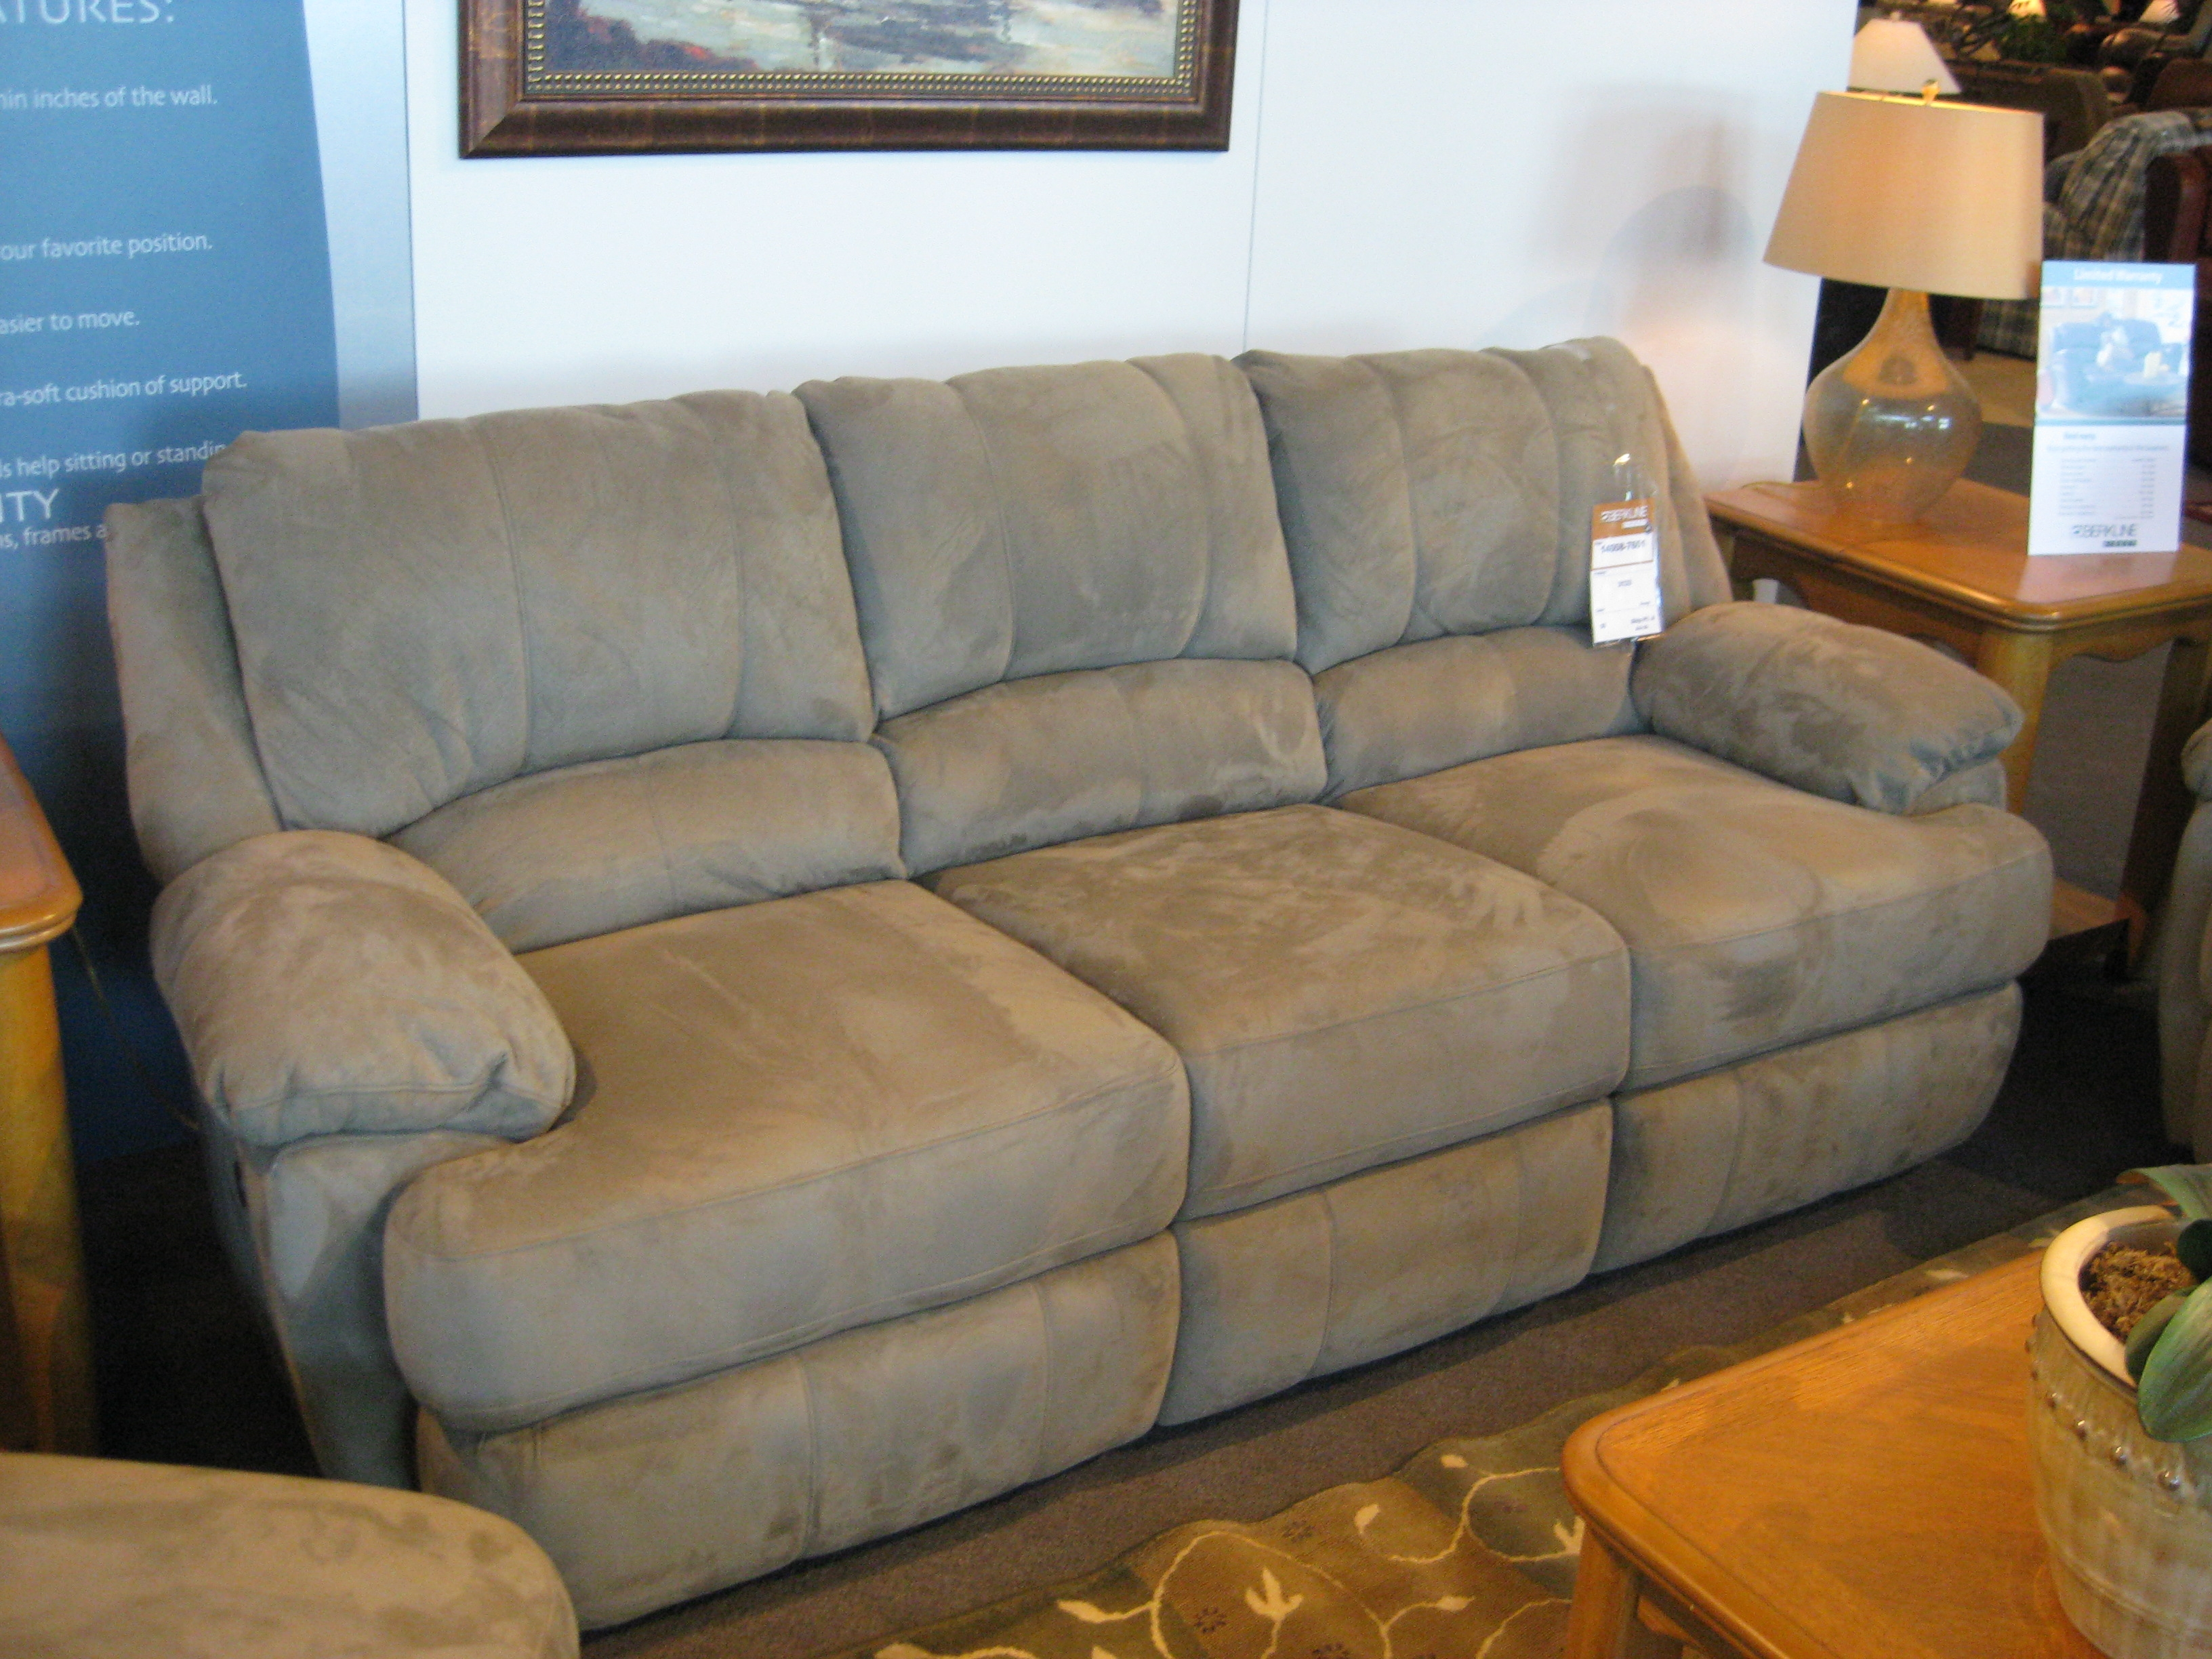 Berkline sofas sams club 28 images berkline sofa for Berkline chaise lounge